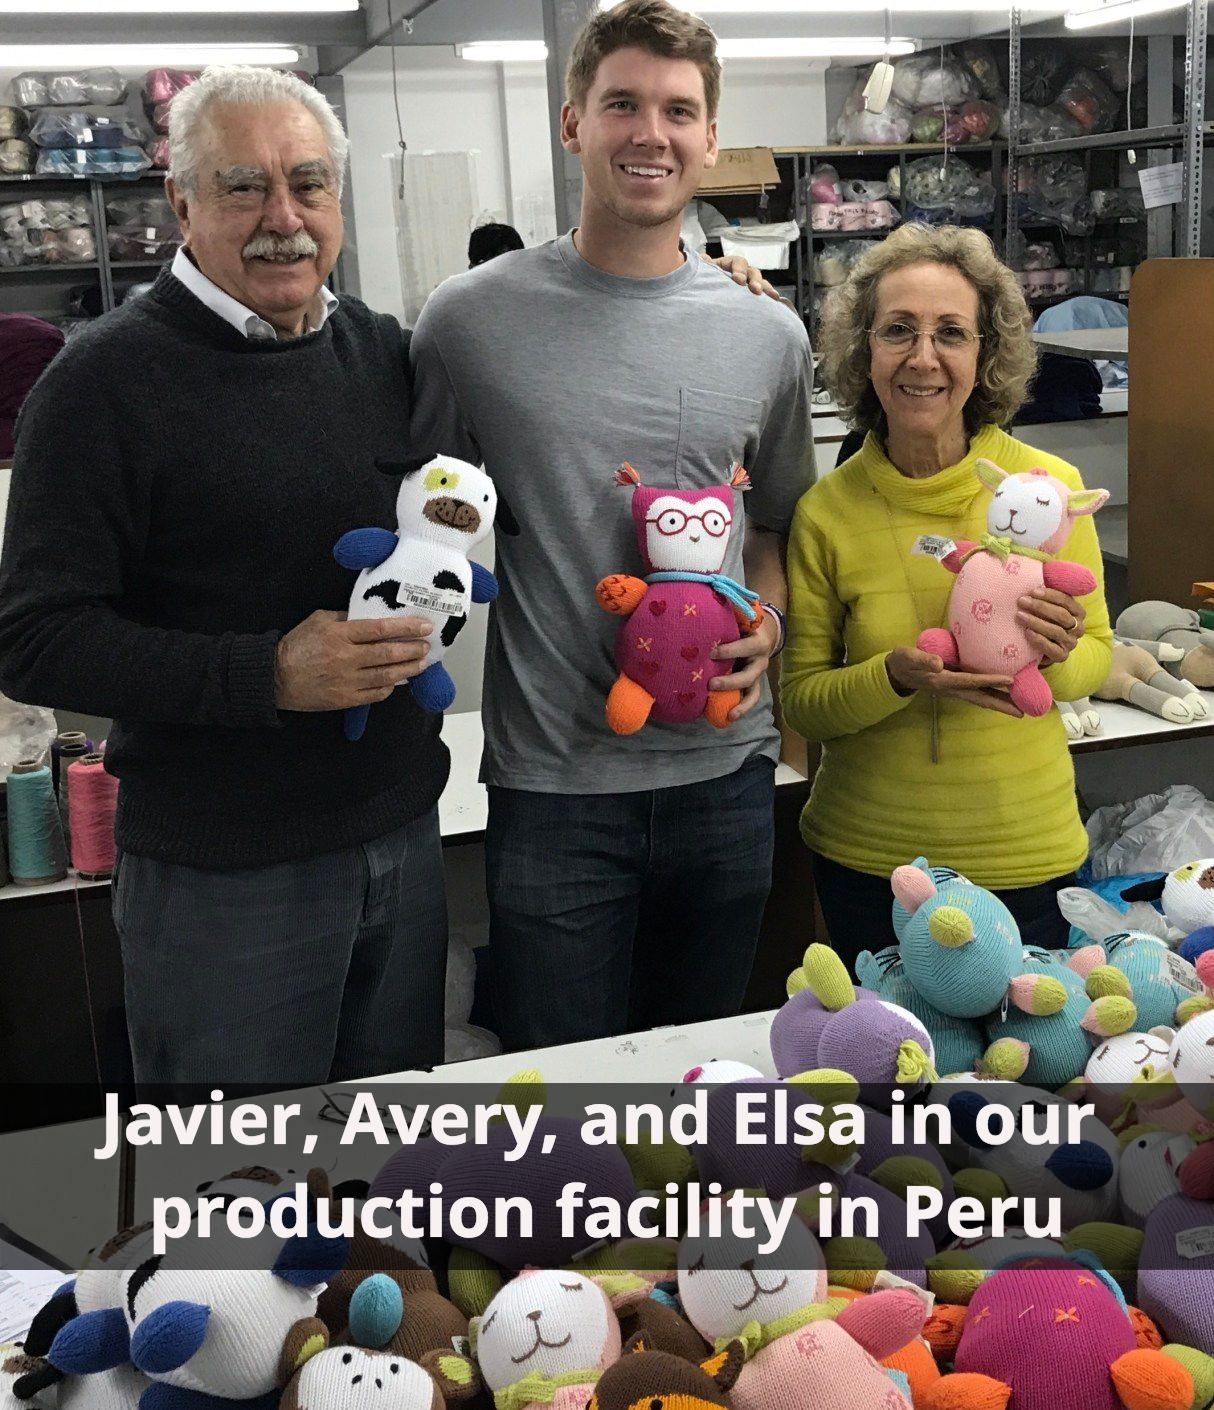 Avery with Javier and Elsa in Peru